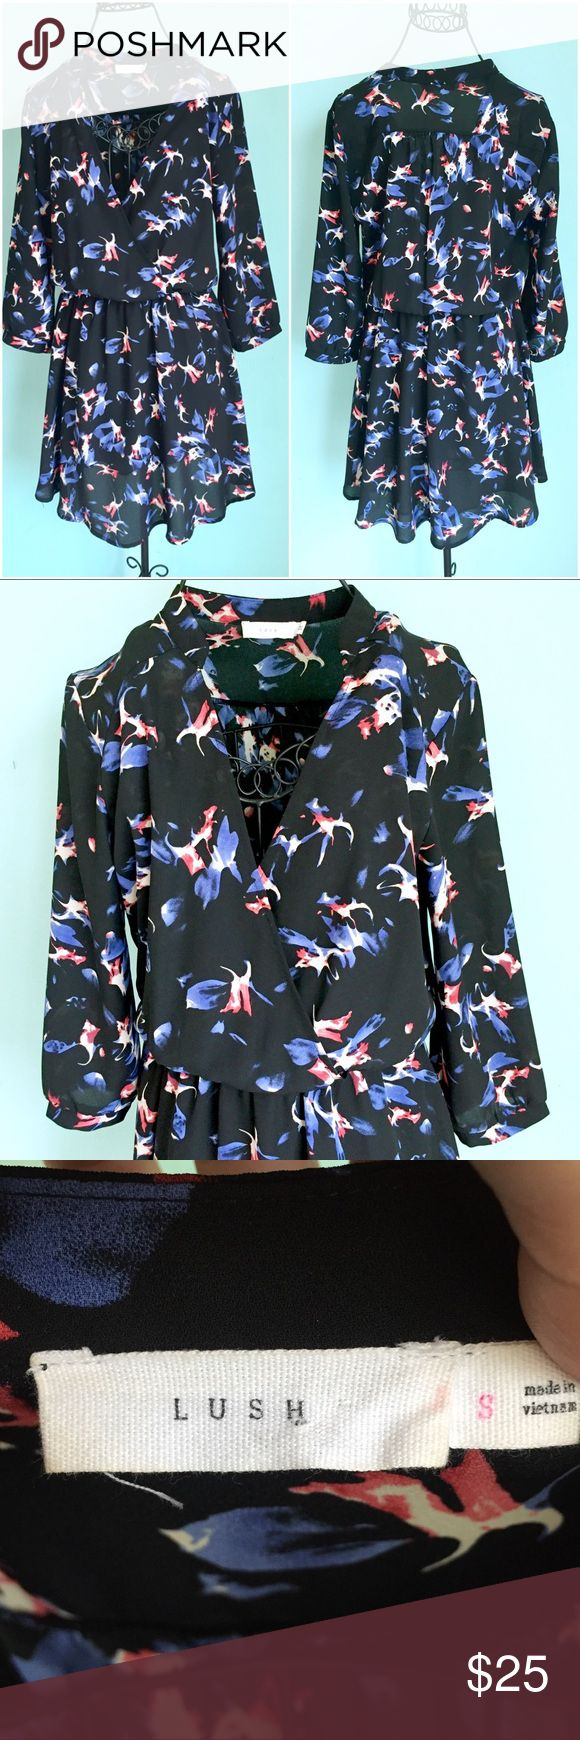 Black Floral Dress with Sleeves Up for sale preowned Little Black Floral Dress, in good condition. Check out my closet, bundle and give me your offer! Lush Dresses Mini